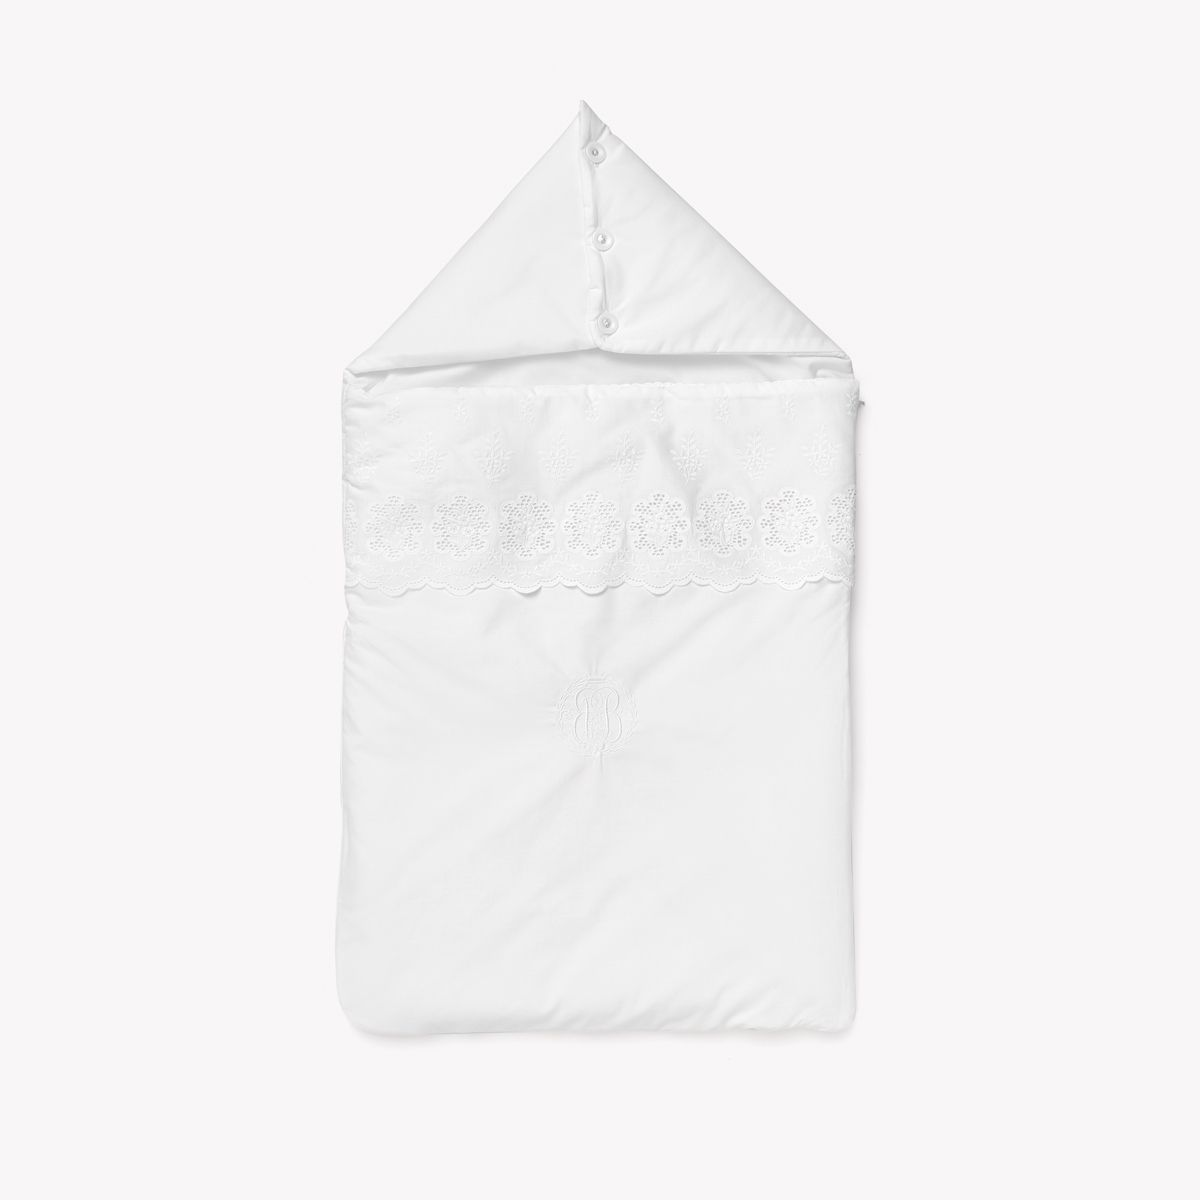 POMME CARAMEL BEBE - NAISSANCE NEIGE NID D'ANGE PERCALE PC-CNP-NA